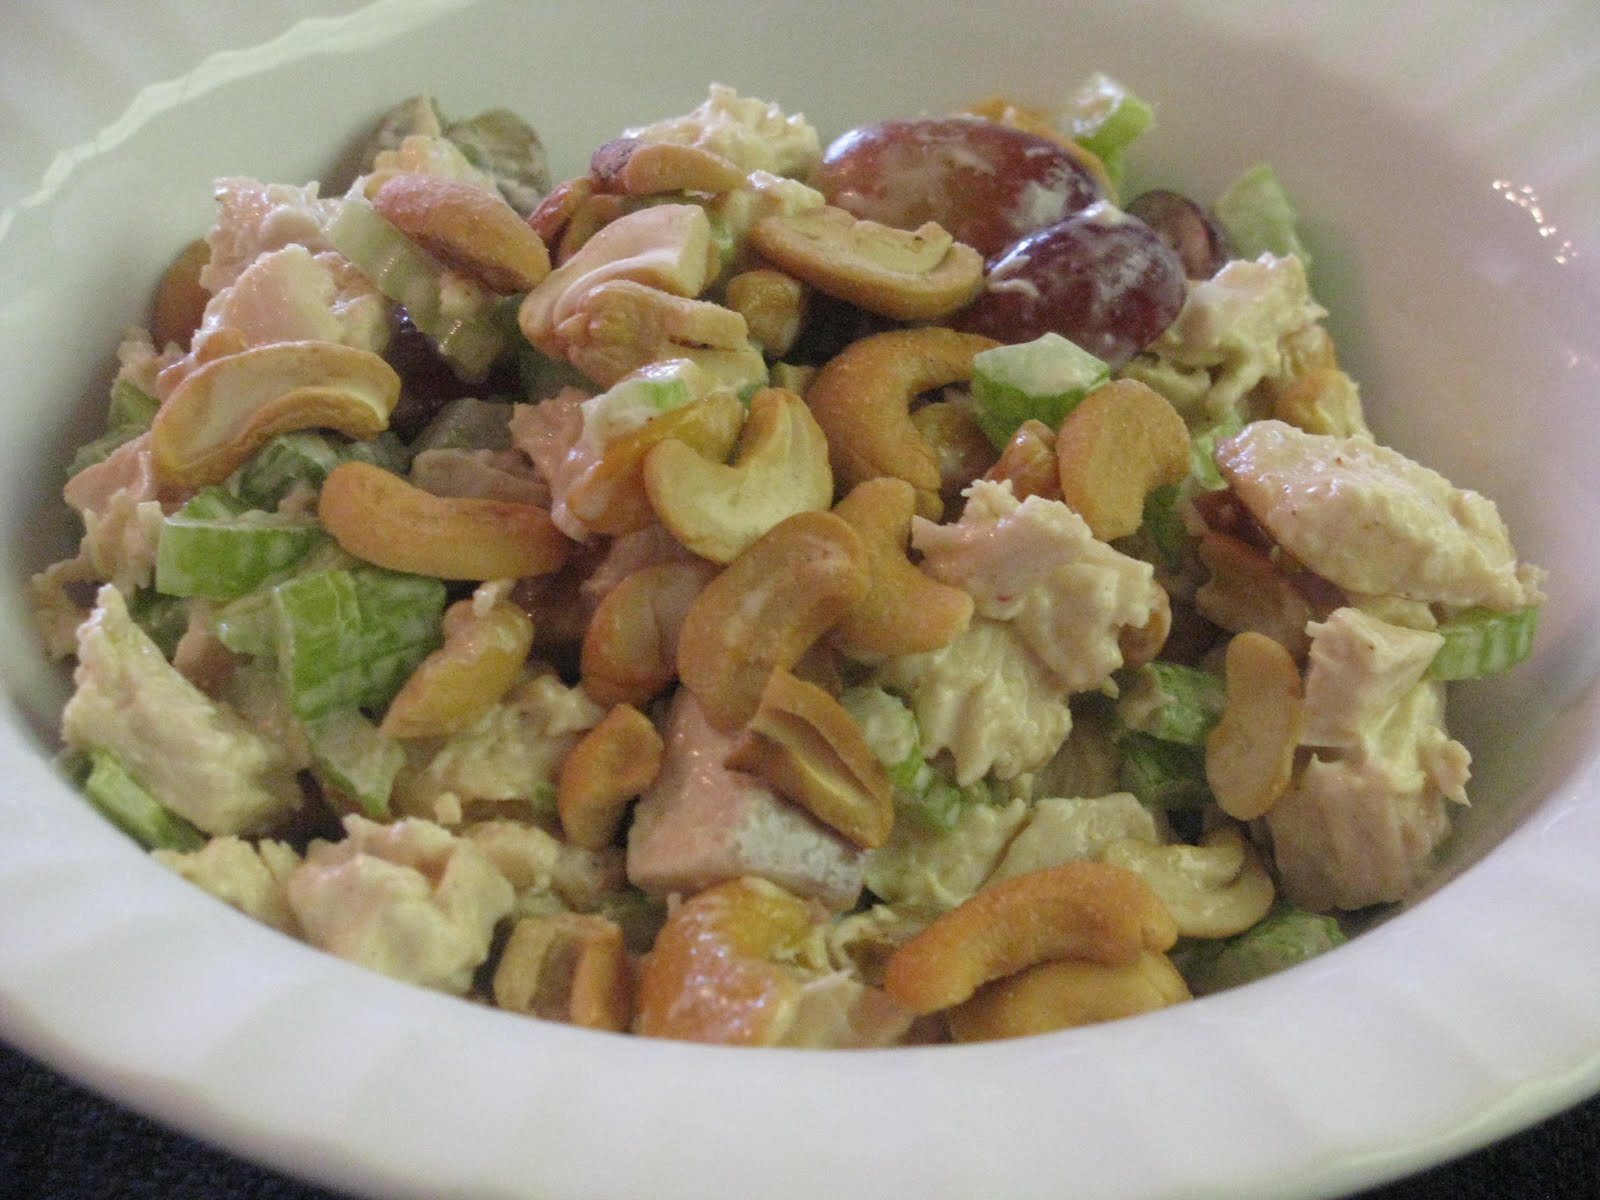 Jan 28,  · A hearty salad that features the warm, sweet and satisfying flavors of fall. Harvest Chicken Salad is made complete with roasted sweet potatoes, toasted walnuts, pear or apple slices, dried cranberries and tender chicken.